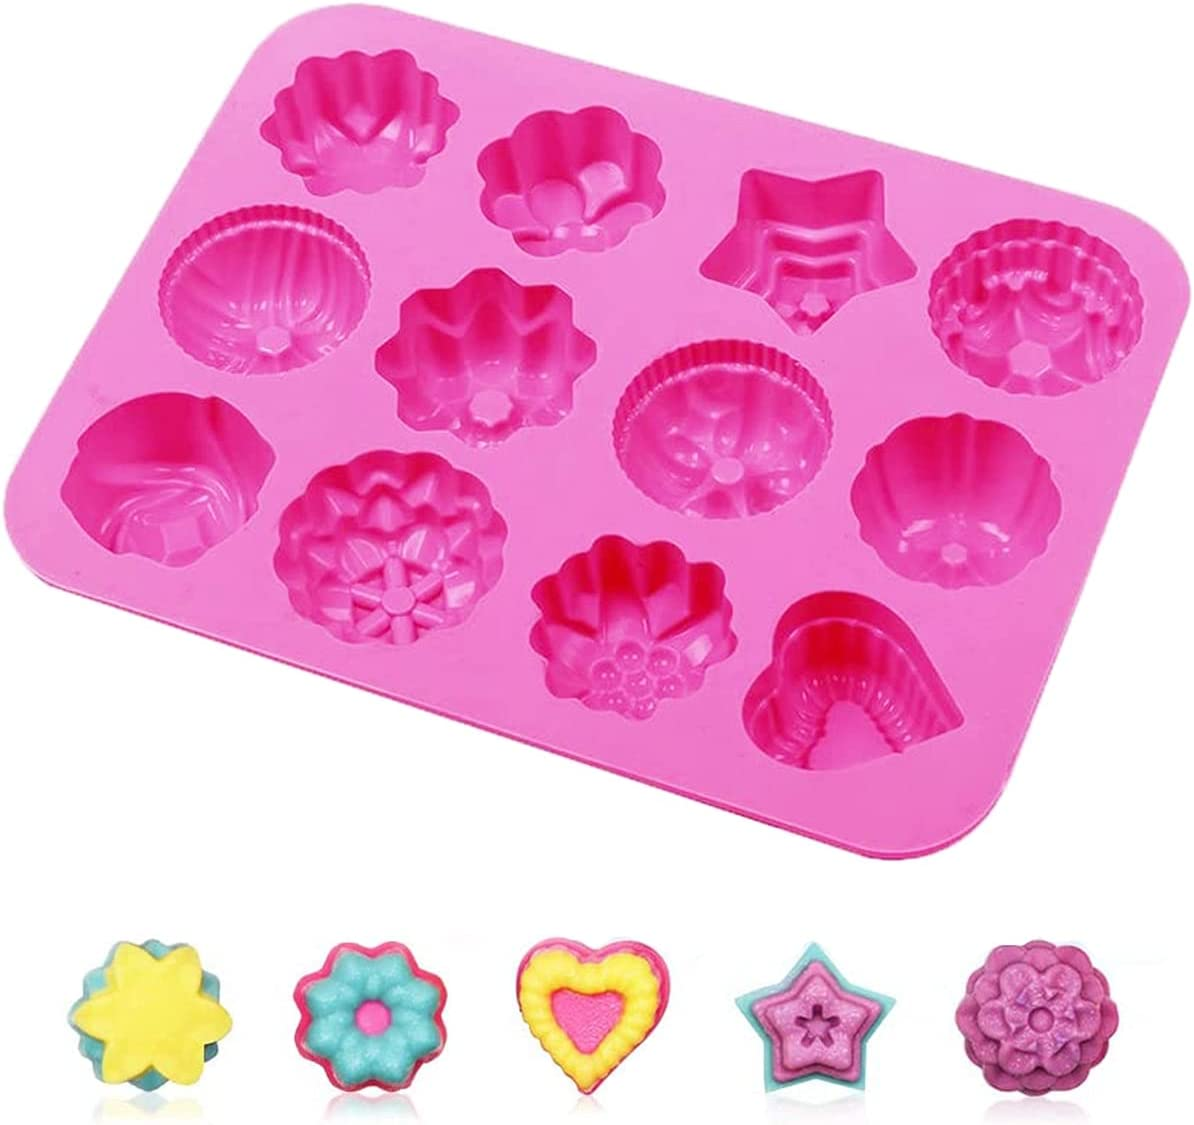 Small 4 Pack Silicone Wax Melt 12 Silicon Long Beach Easy-to-use Mall DIY Form Molds Flowers